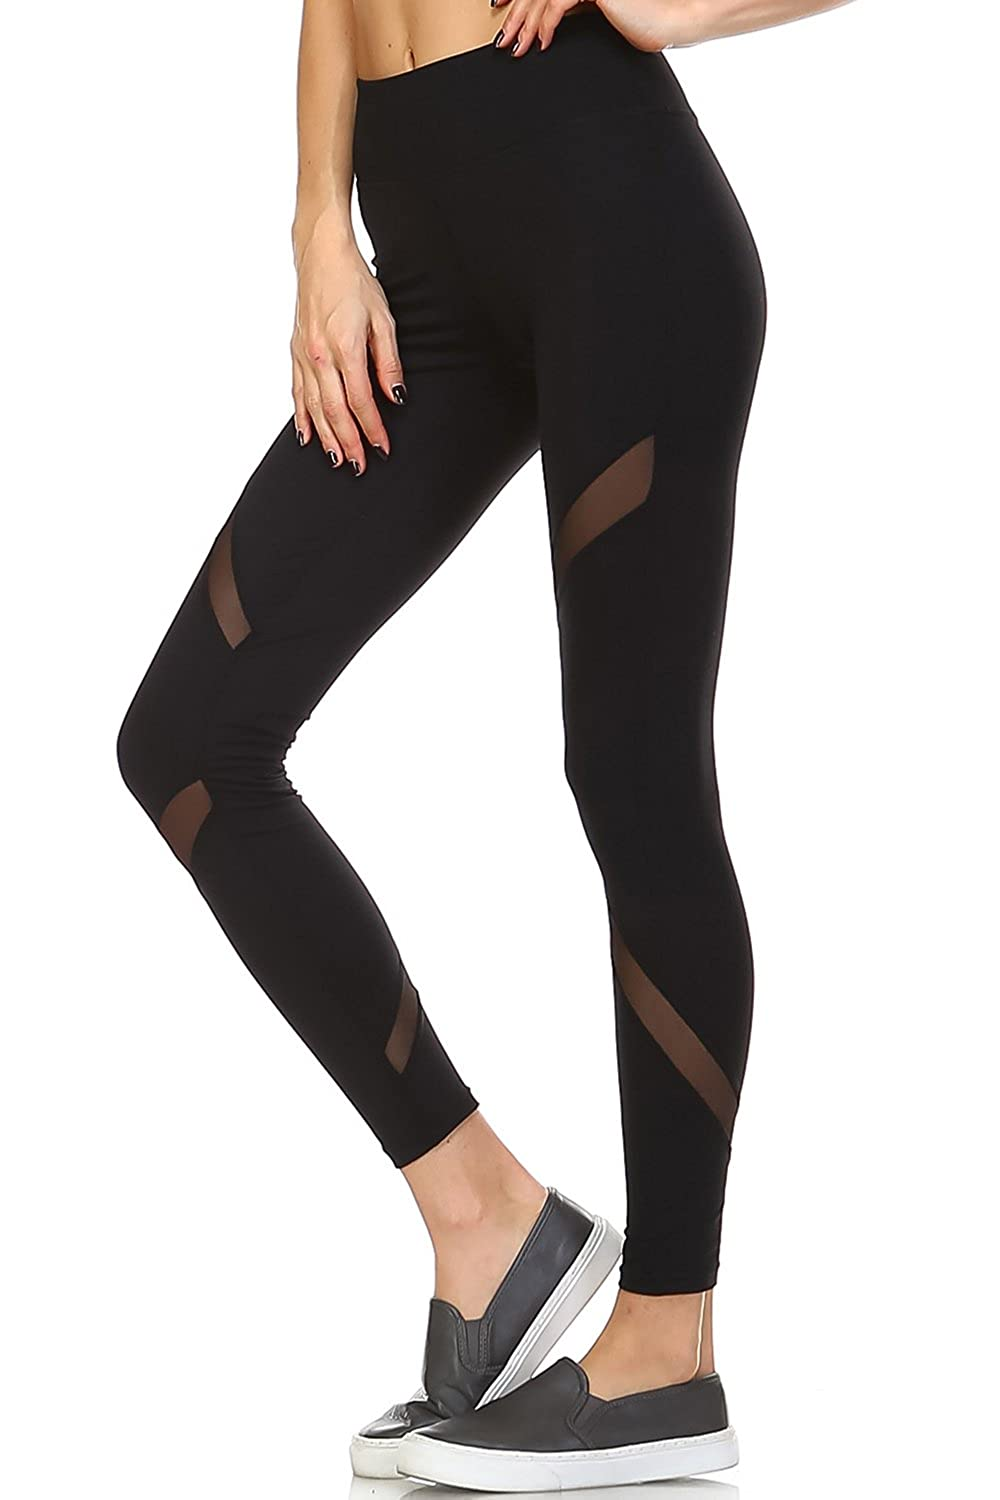 82054994a85246 Mono B Women's Performance Activewear - Yoga Leggings with Sleek Contrast  Mesh Panels at Amazon Women's Clothing store: